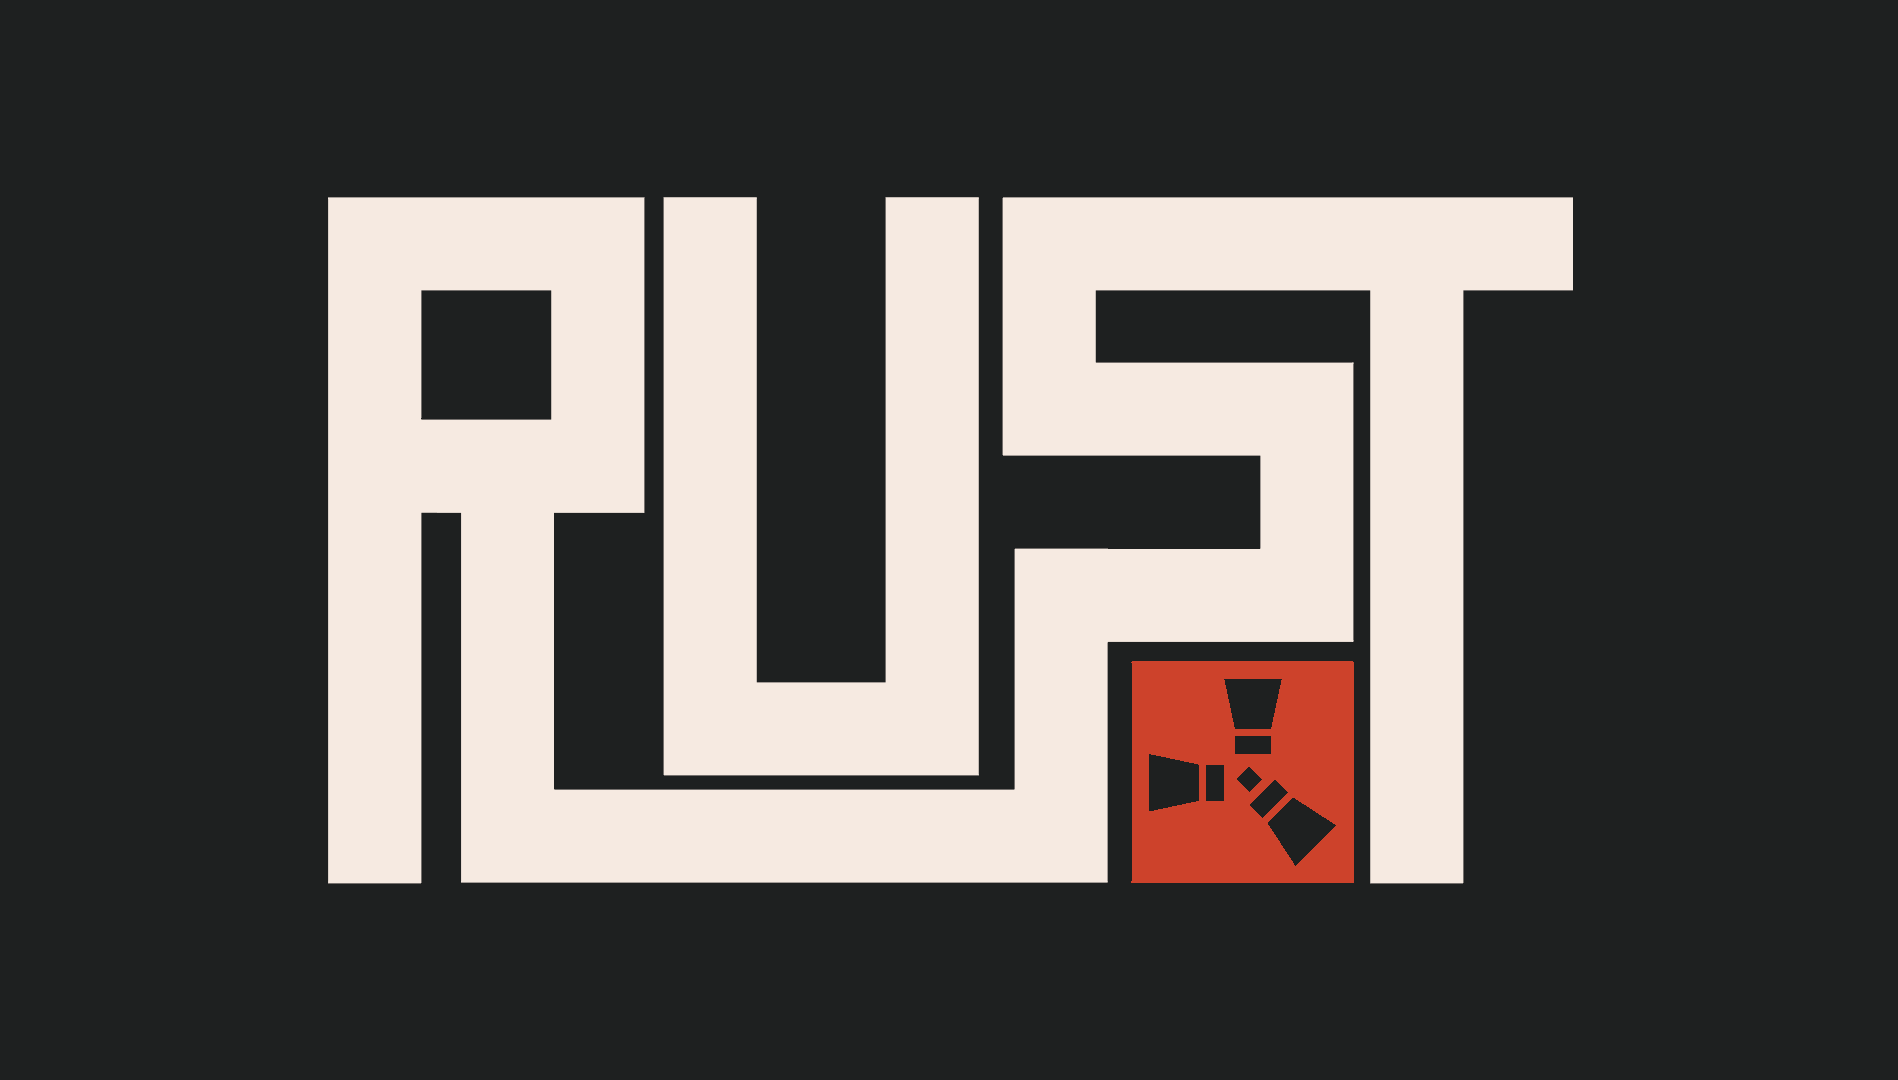 Rust on Steam: Comments can be a brand's best friend – Confessions